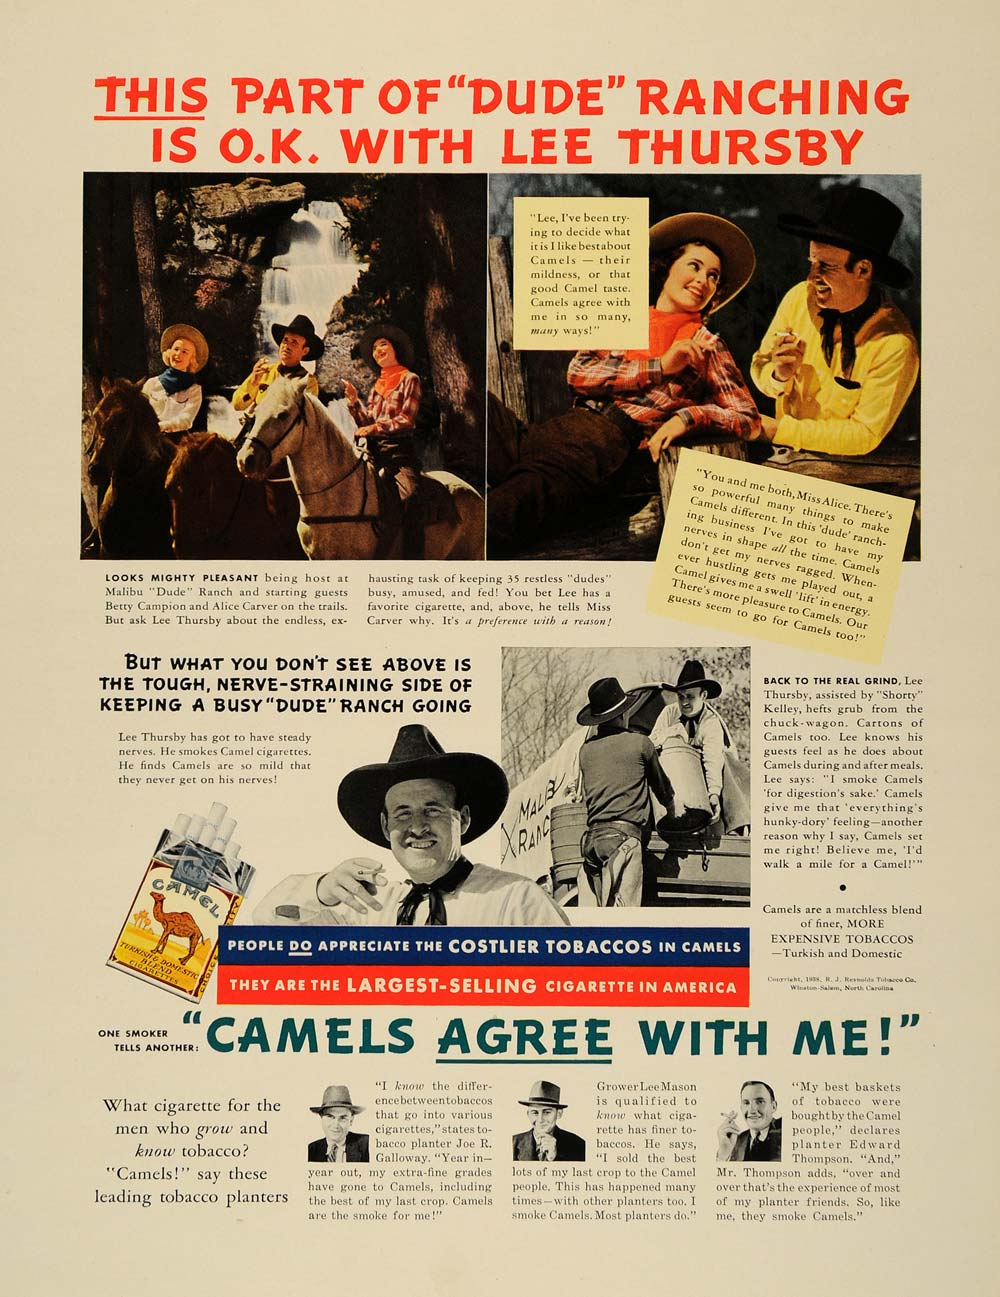 1938 Ad Camel Cigarettes Lee Thursby Alice Carver Smoke - ORIGINAL F2A